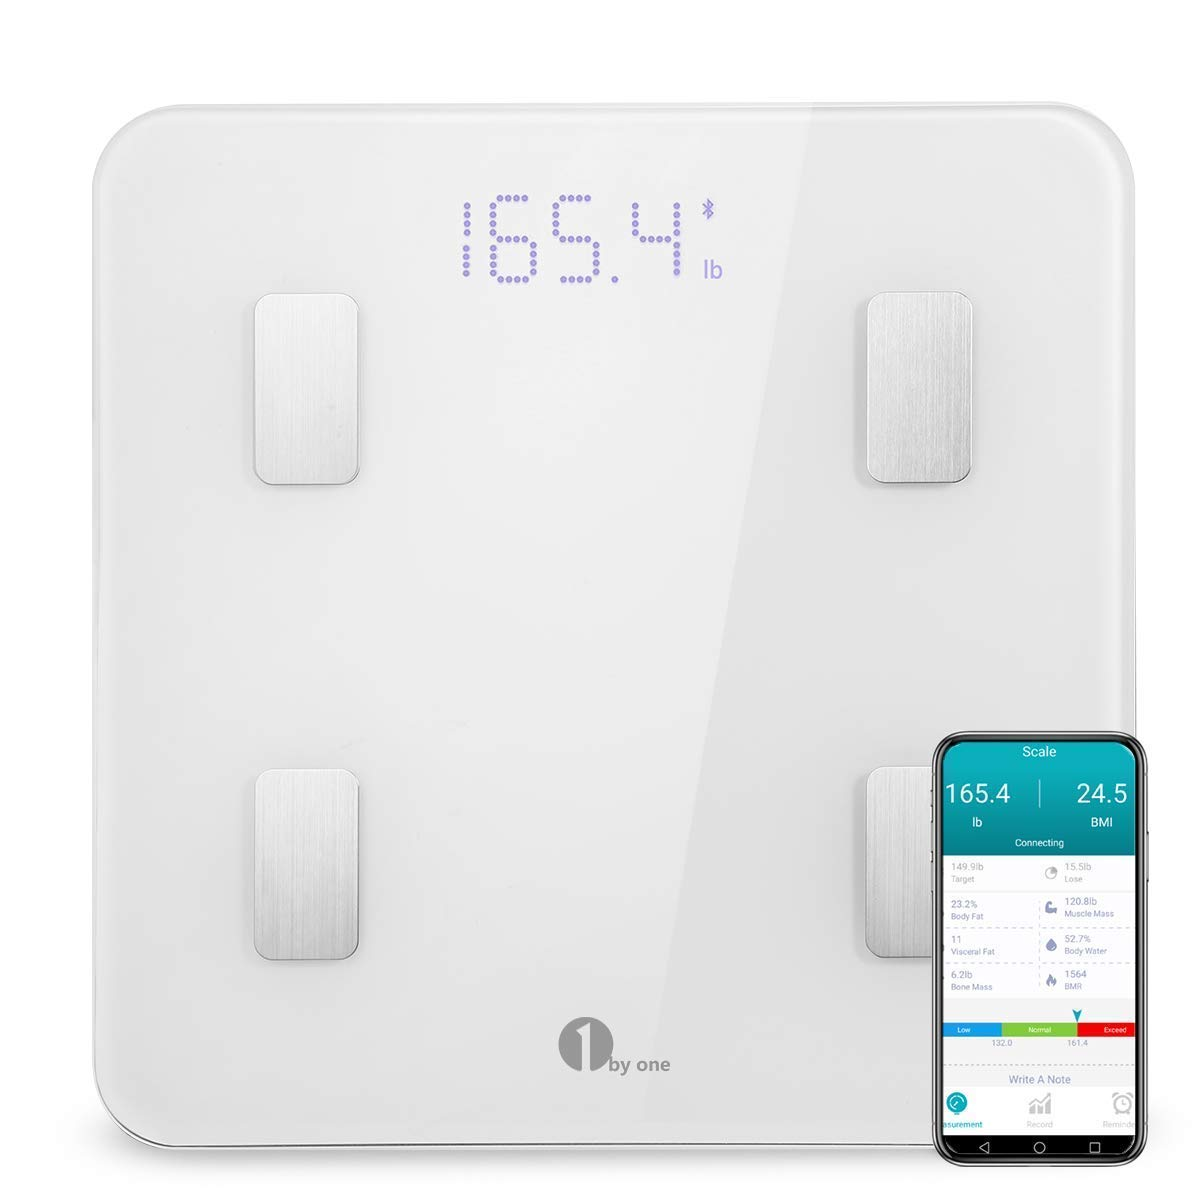 1byone Body Fat Scale with iOS and Android App Smart Wireless Digital Bathroom Scale for Body Weight, Body Fat, Water, Muscle Mass, BMI, BMR, Bone Mass and Visceral Fat, White by 1 BY ONE